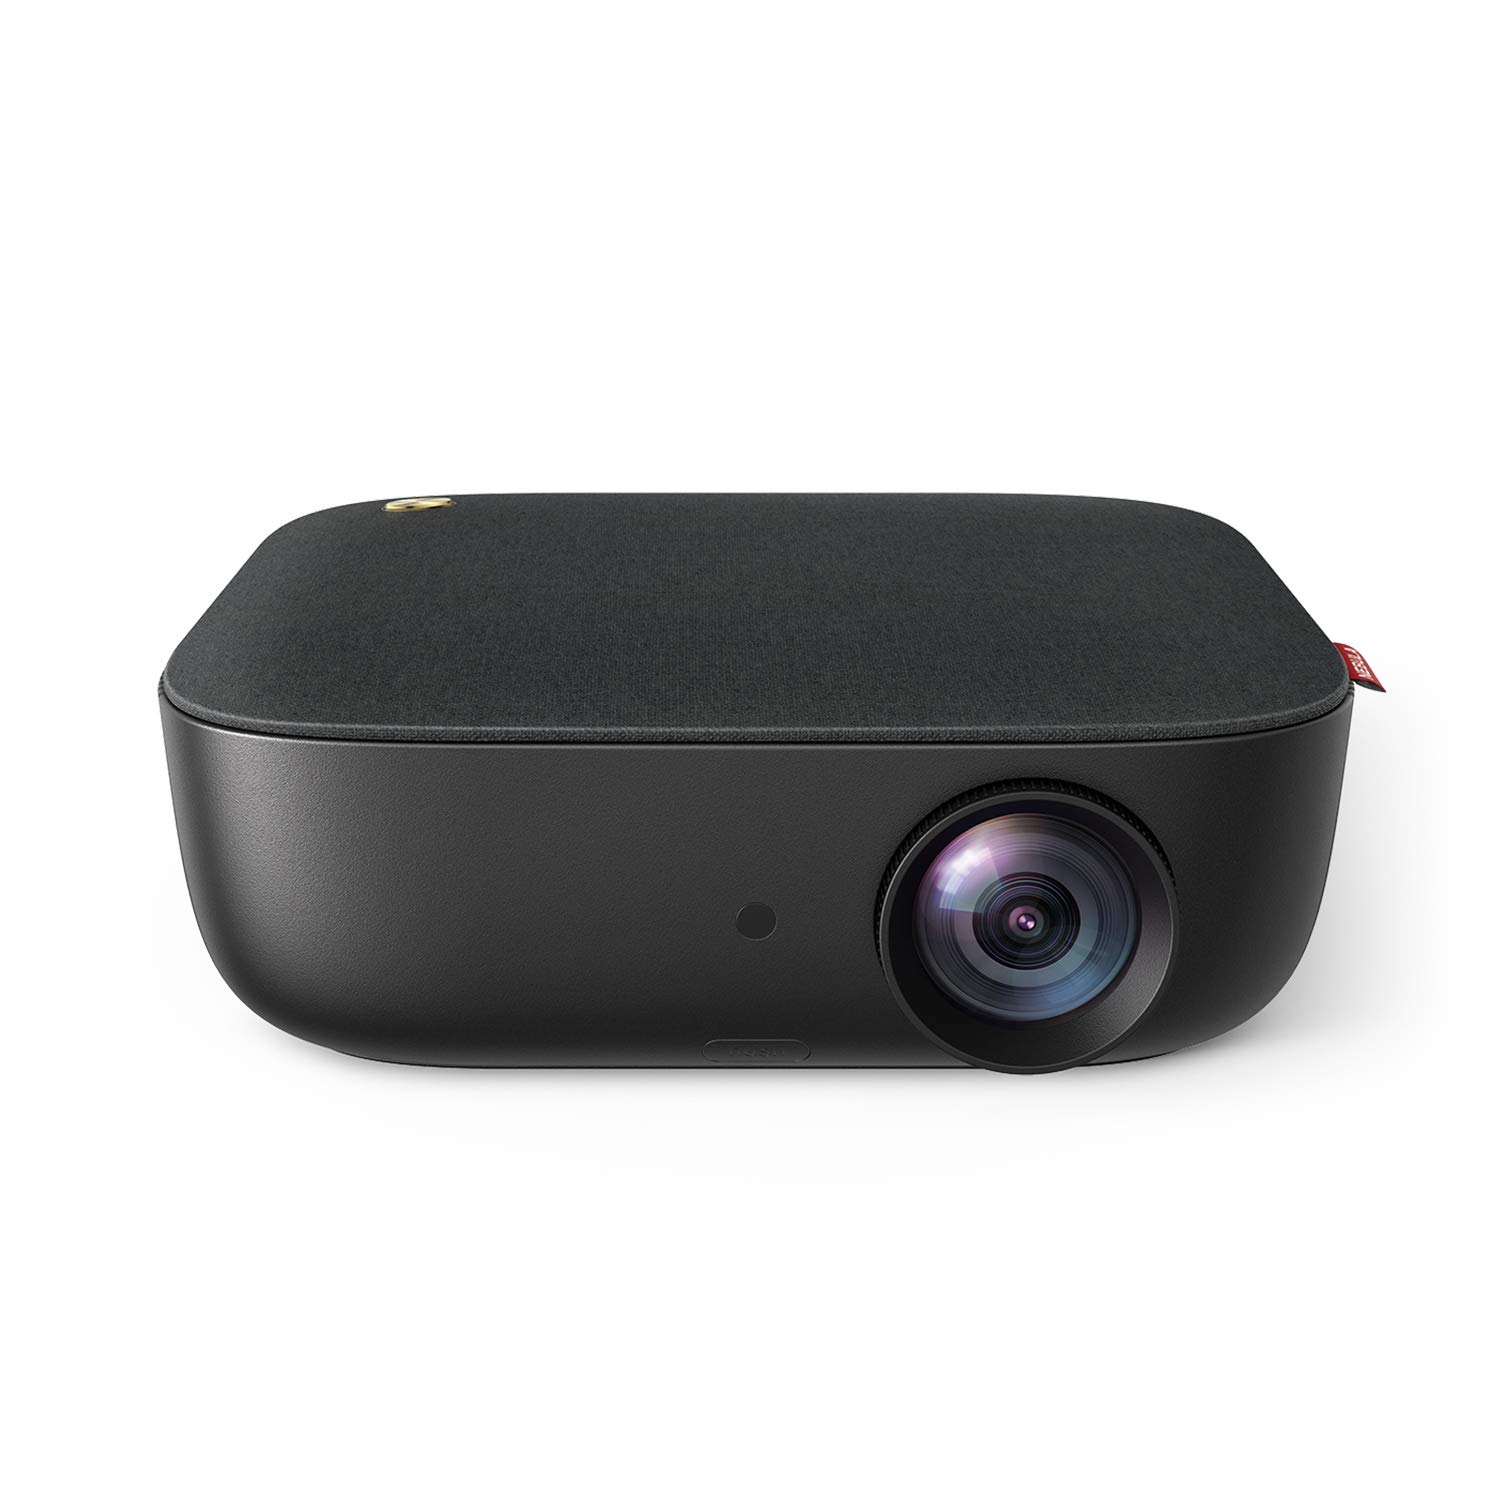 Nebula by Anker Prizm II HD 1080p LED Multimedia Projector    List Price: $230   Today's Price: $172.49    via Amazon